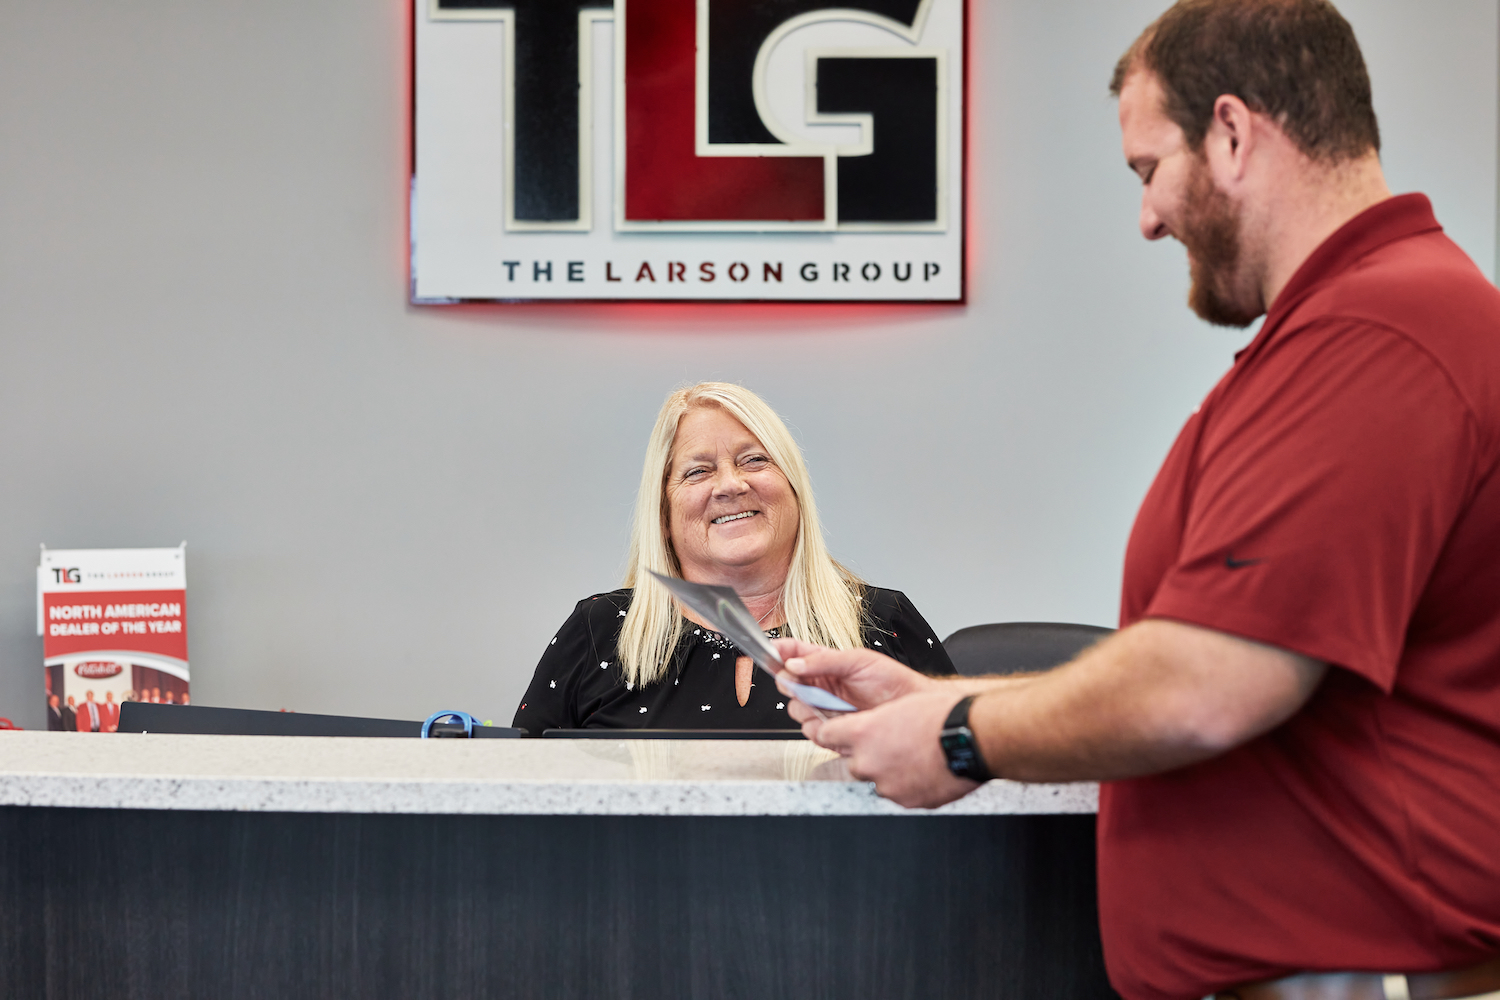 Commercial truck financing is made easy for TLG customers thanks to the company's dedicated partnership with PACCAR Financial and Capital Lending.